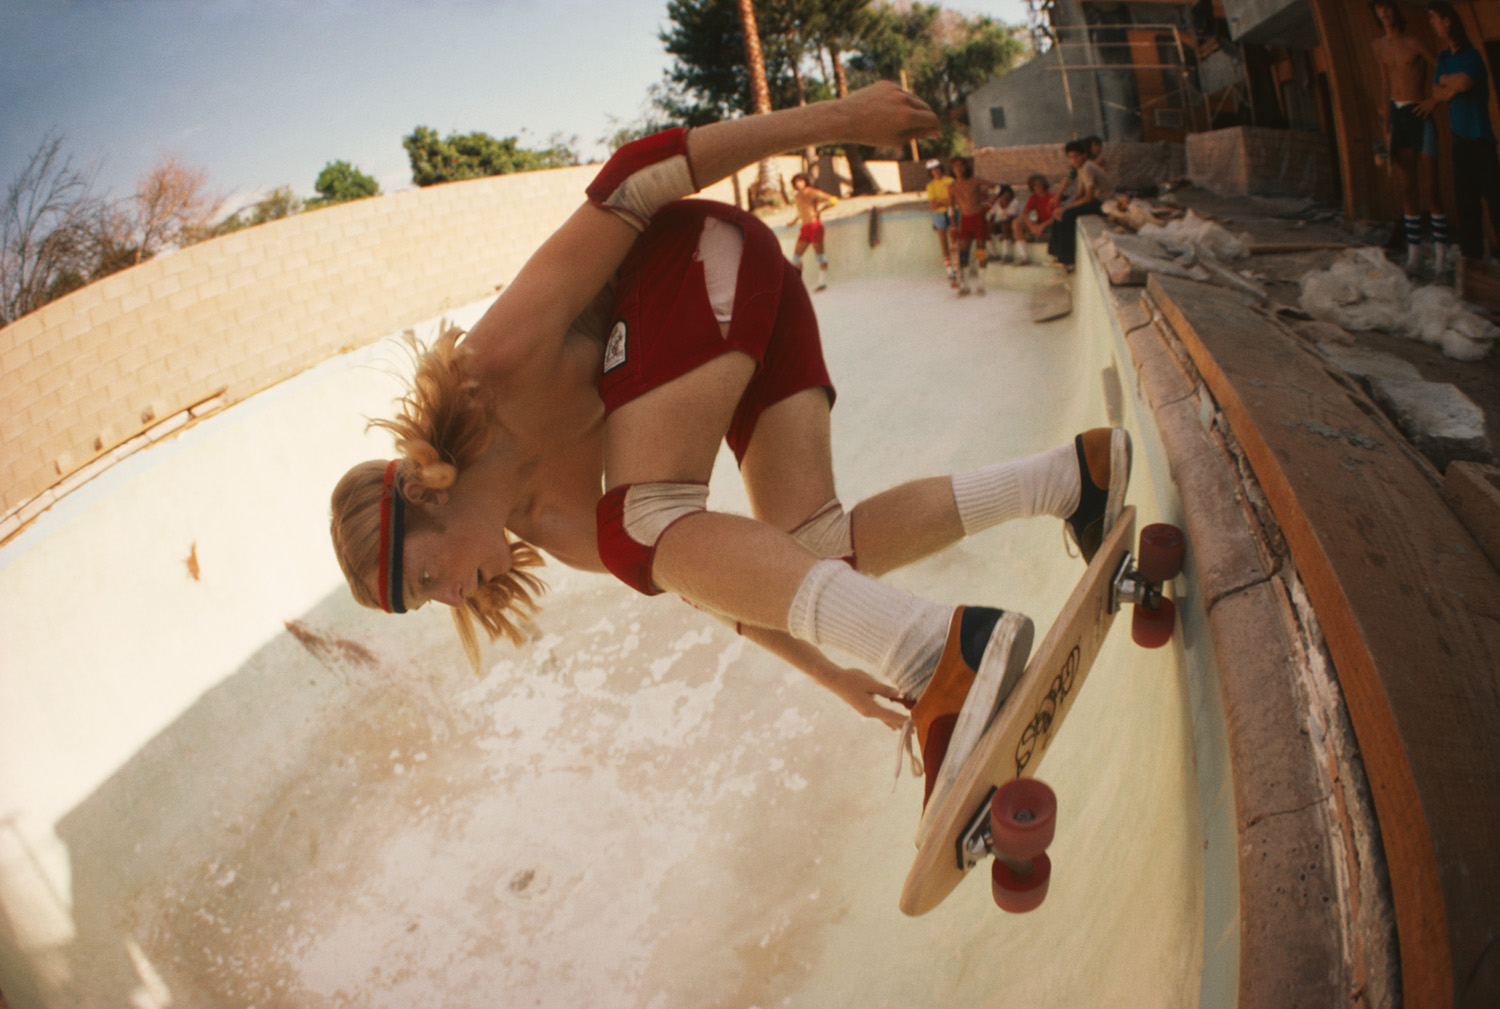 Stacy Peralta in Coldwater. Back in the days | © Vans